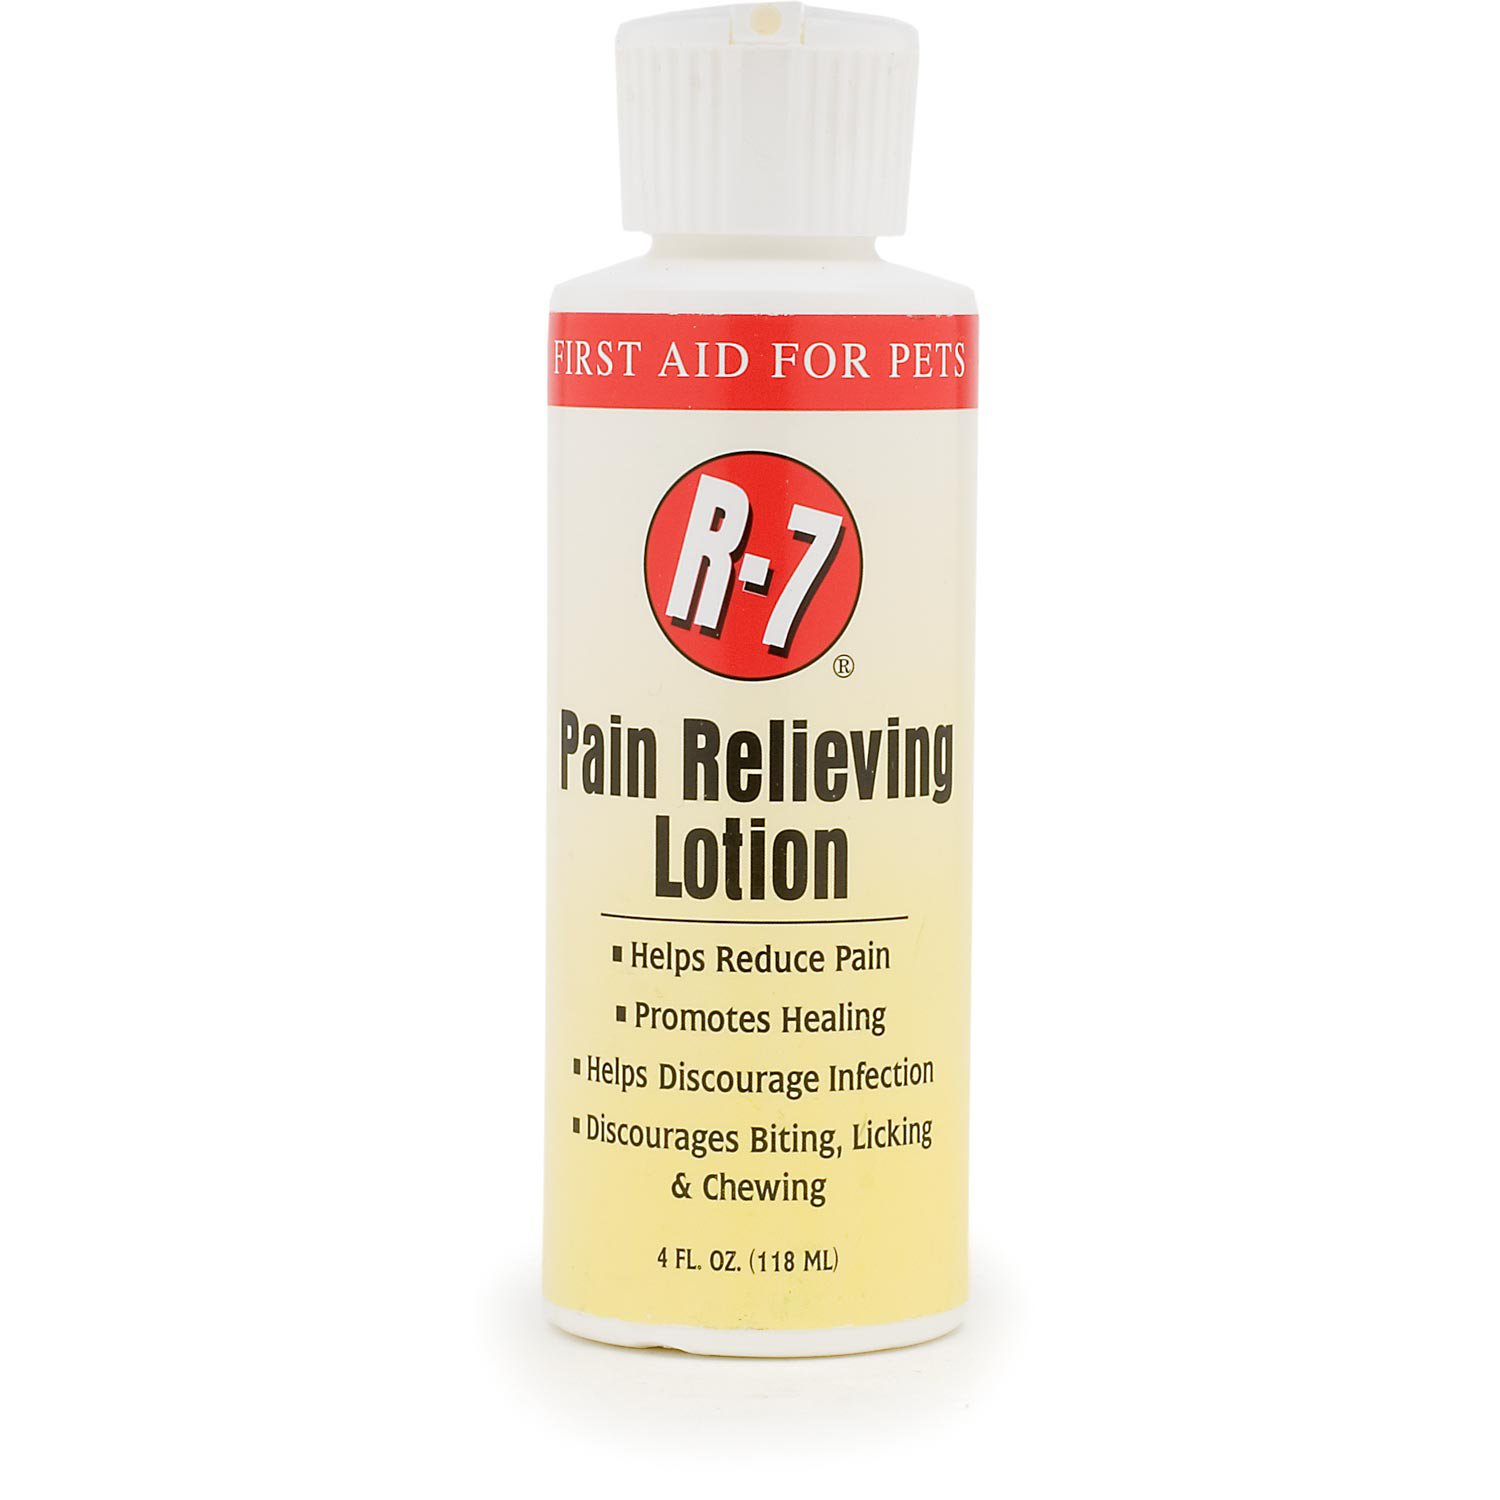 R-7 Pain Relieving Lotion